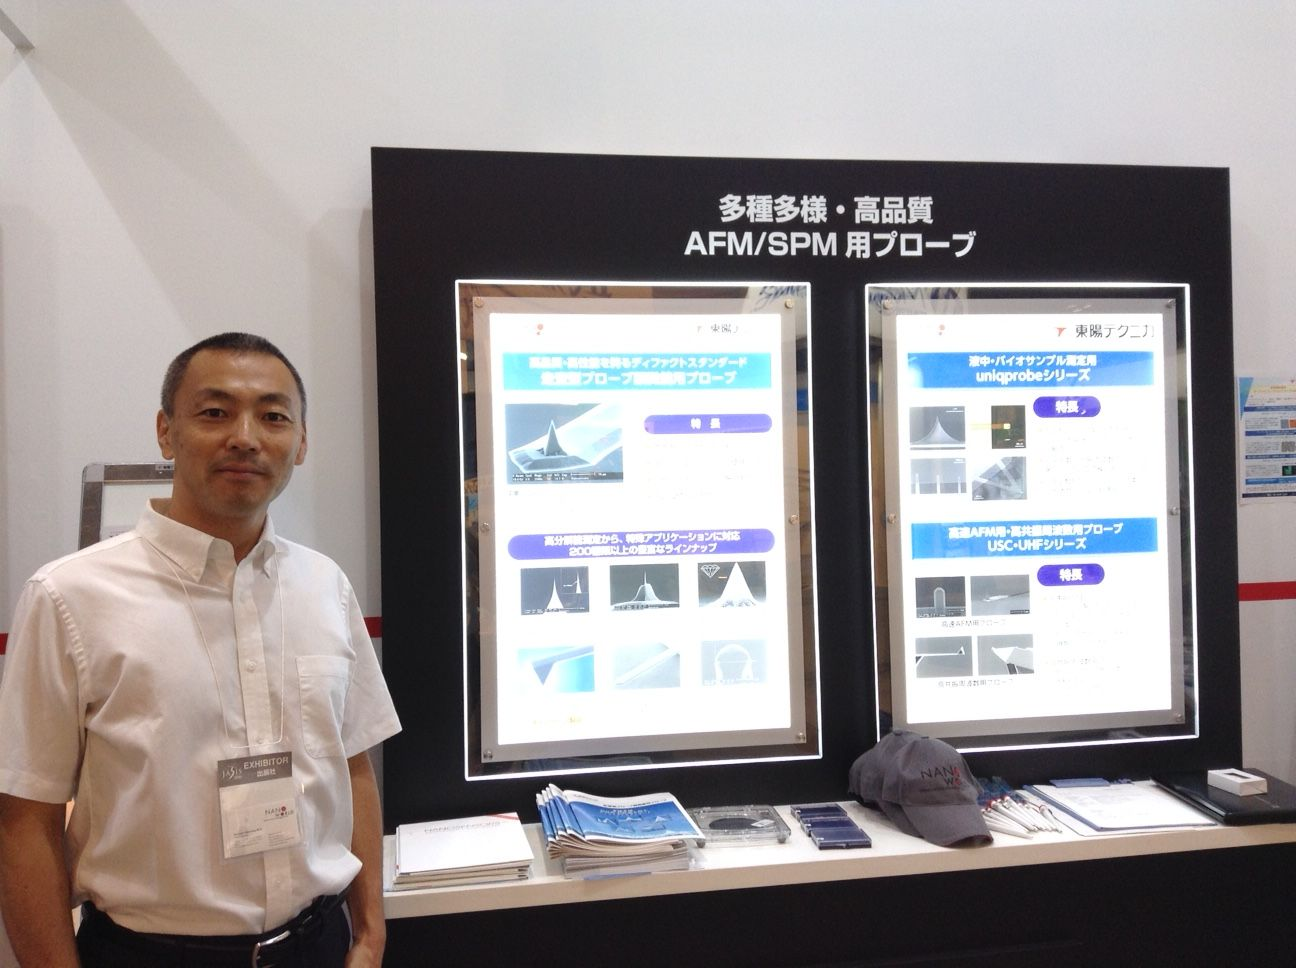 Dr. Terunobu Akiyama in front of the NANOSENSORS AFM tips display at JASIS 2016